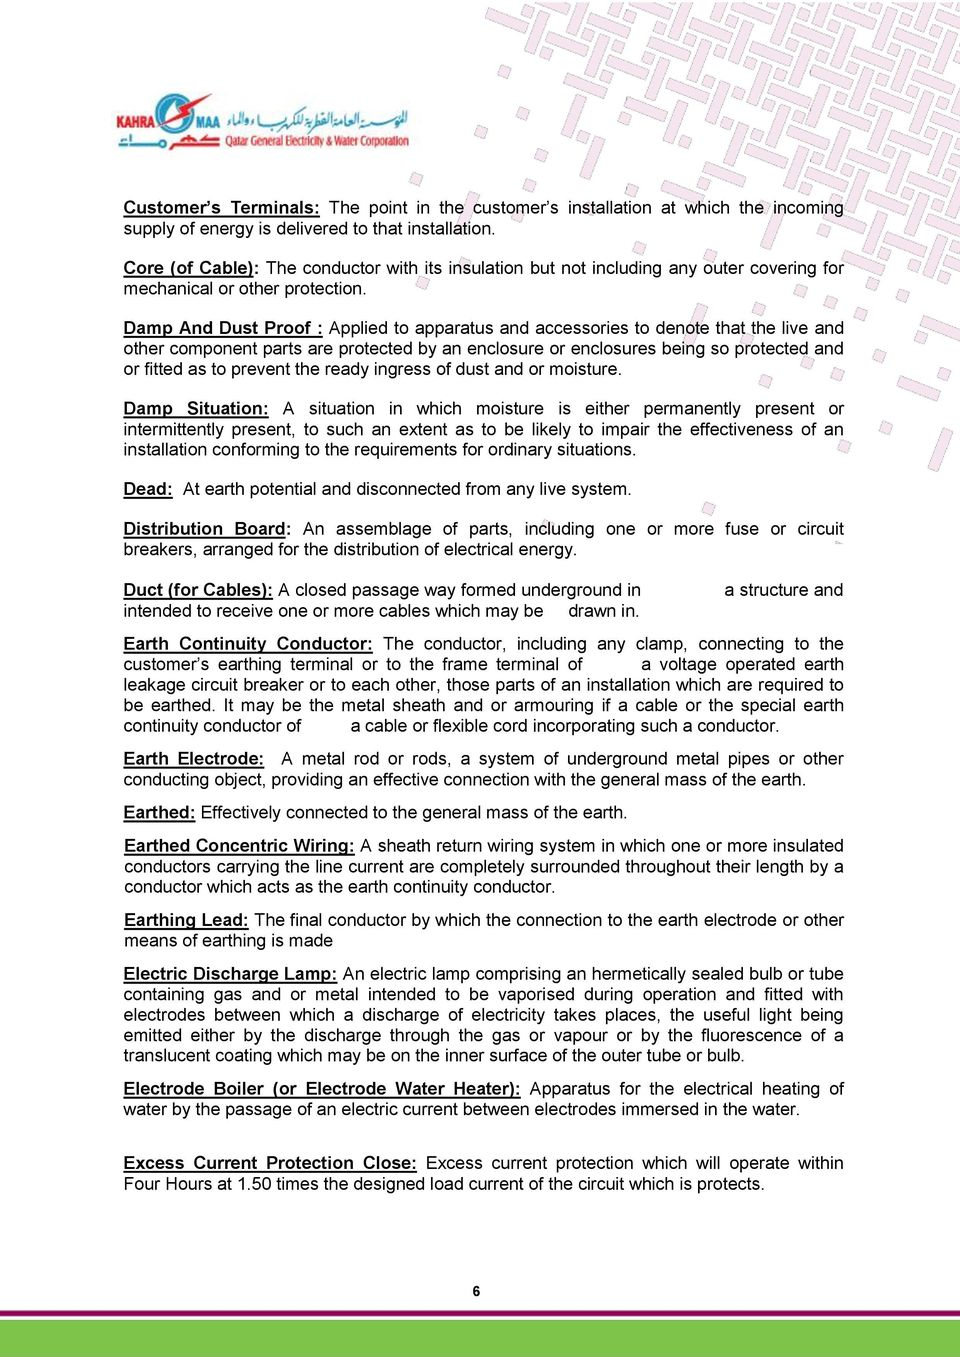 Regulations For The Installation Of Electrical Wiring Singlephase In A Multistory Building Damp And Dust Proof Applied To Apparatus Accessories Denote That Live